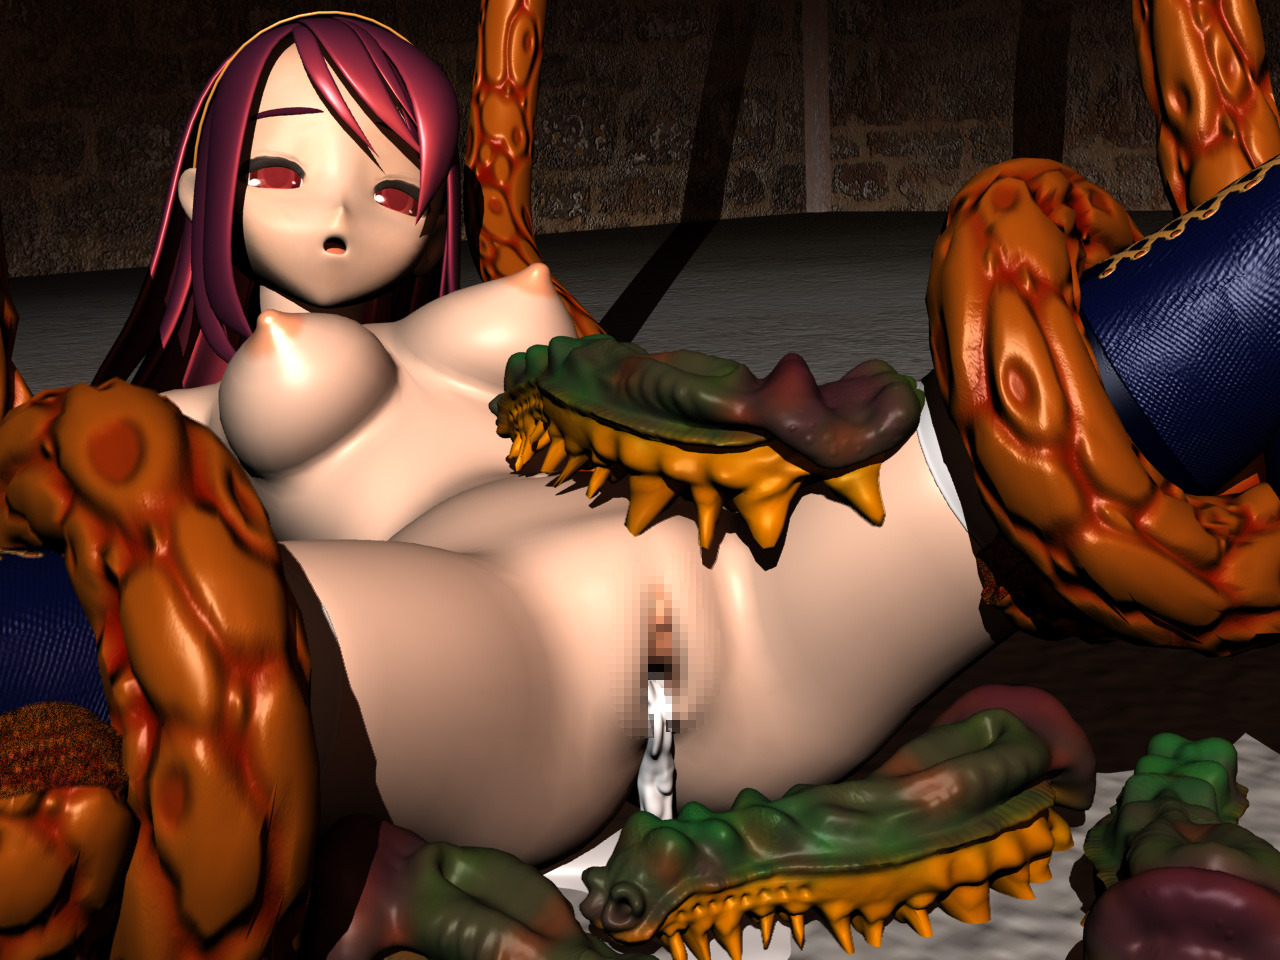 Monster cartoon video image xx nude scene